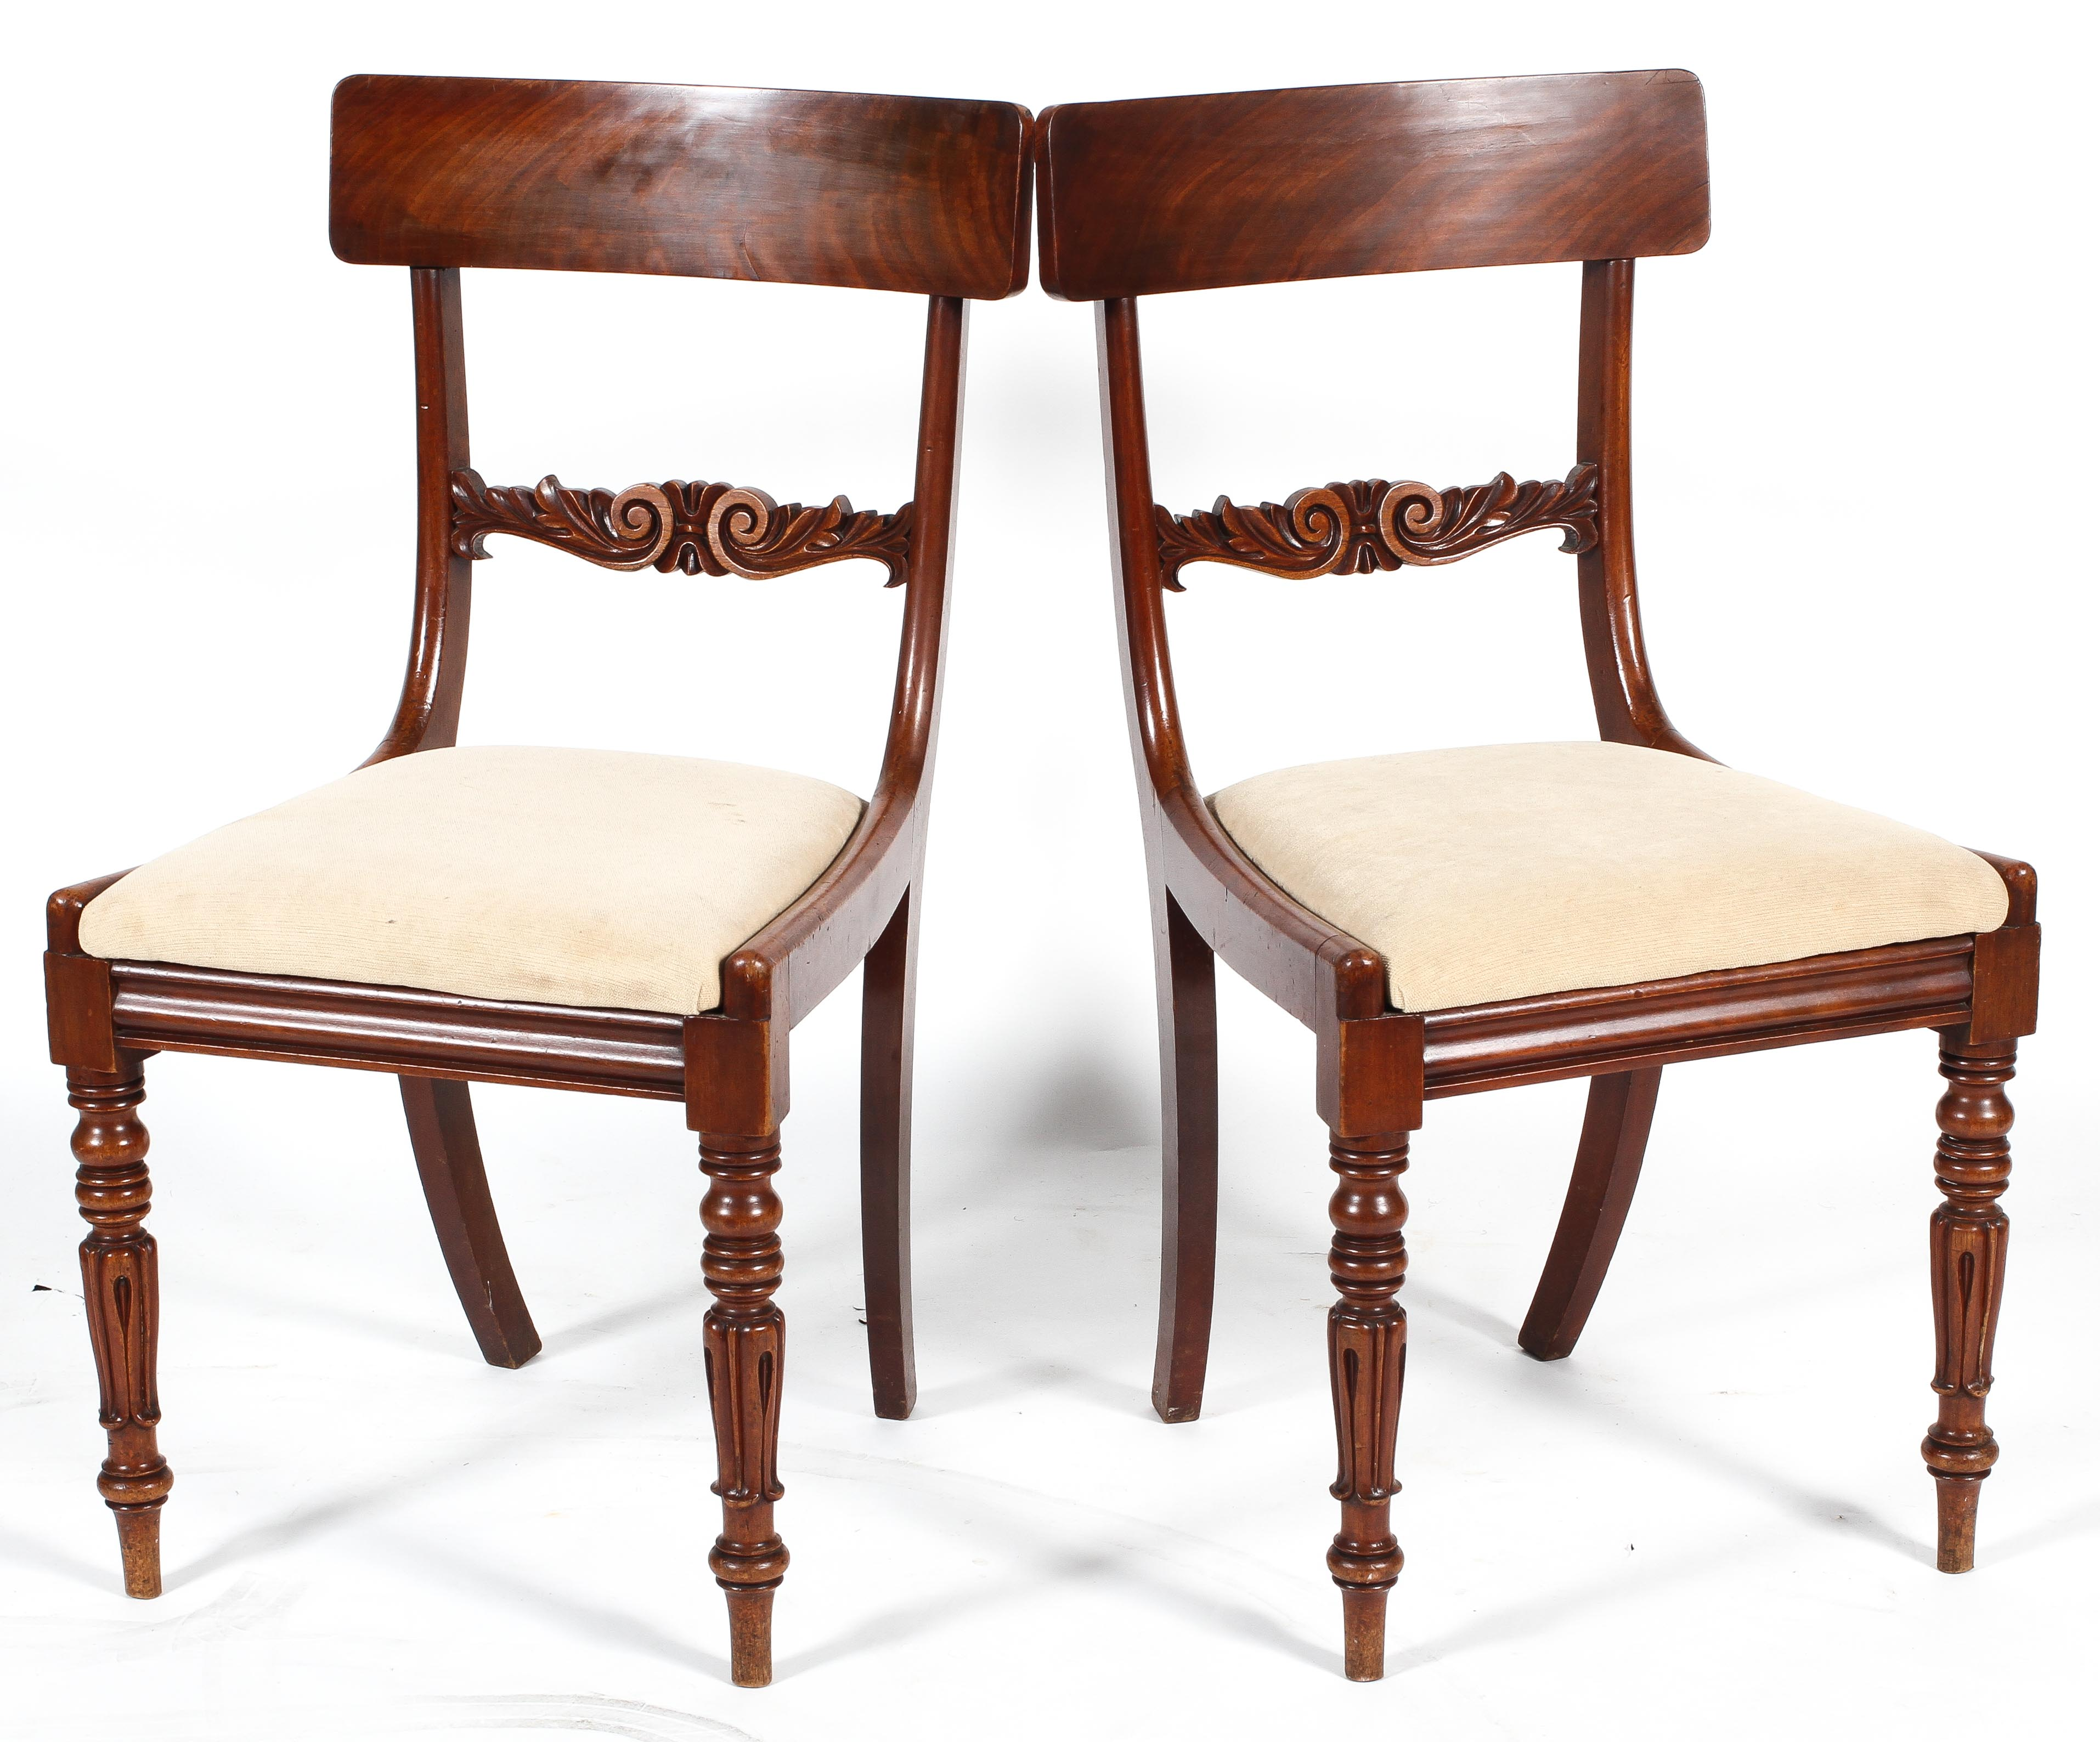 A pair of Regency style mahogany dining chairs with bar backs, drop in seats and turned front legs,